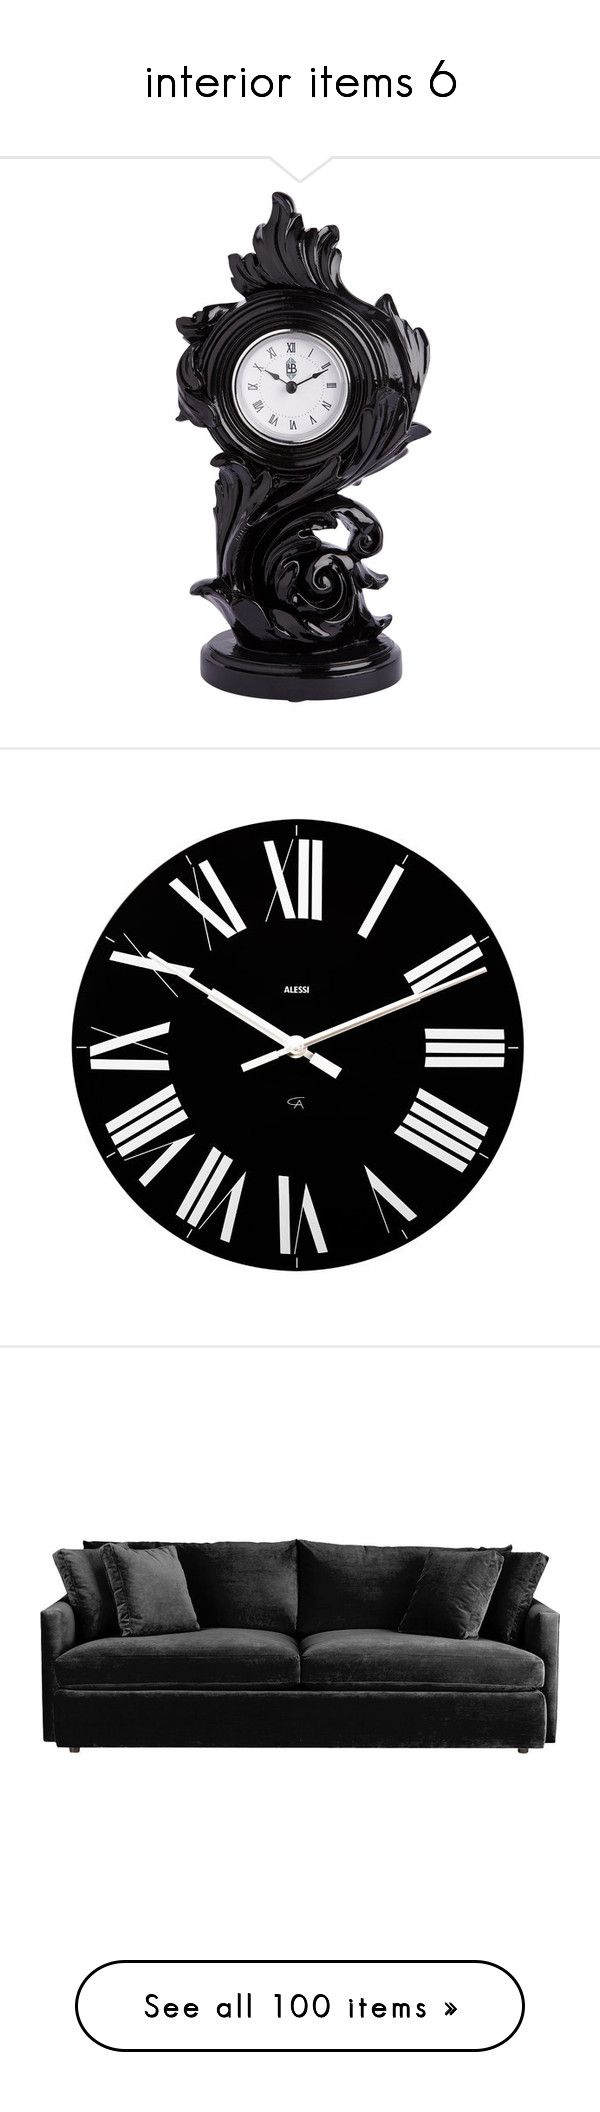 """""""interior items 6"""" by black-string-boutique ❤ liked on Polyvore featuring home, home decor, clocks, decor, fillers, accessories, black clock, black mantle clock, black home decor and black mantel clock"""